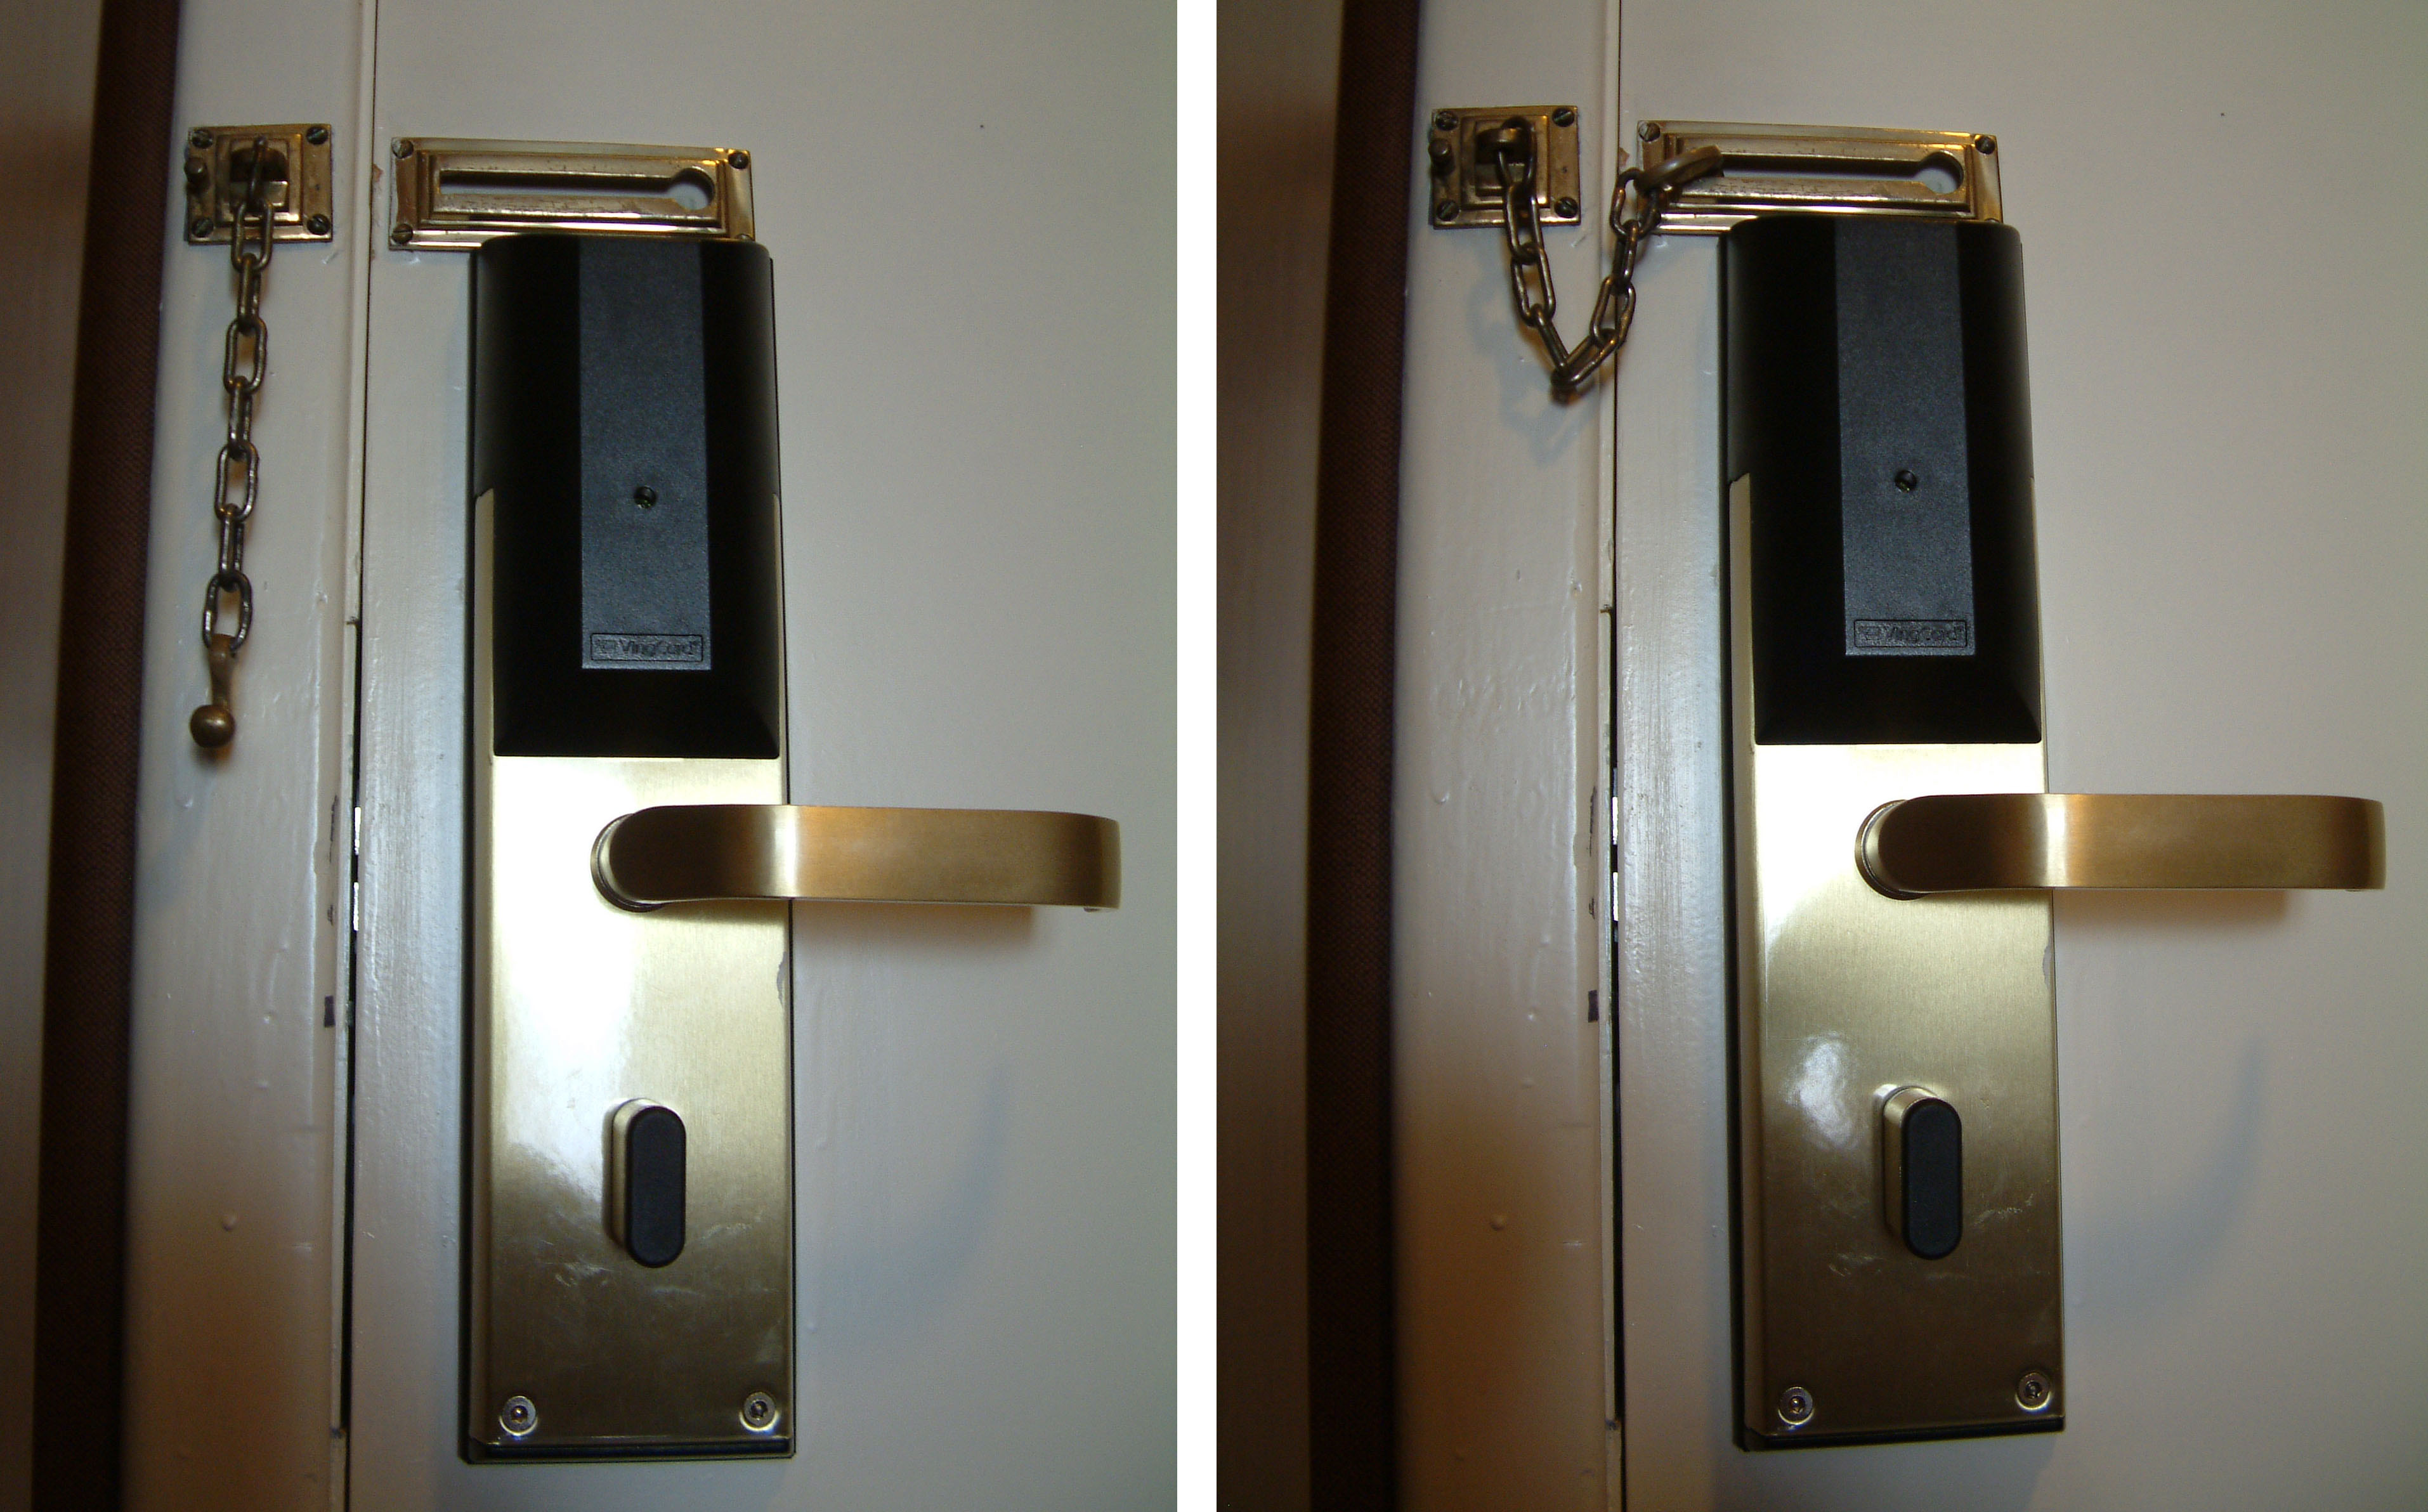 How To Get Into A Door With A Chain Lock Photo Album - Woonv.com ...